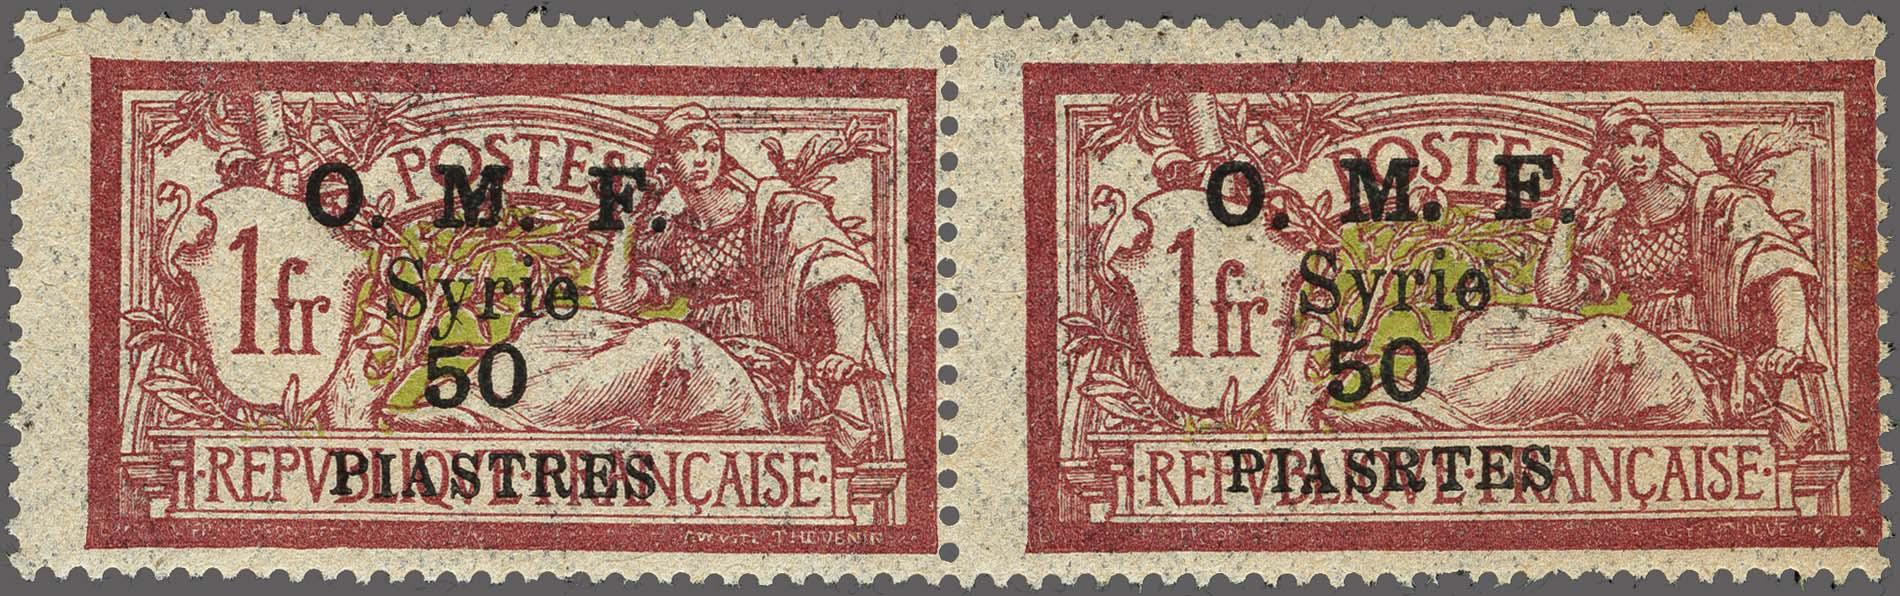 Lot 115 - France and former colonies syria -  Corinphila Veilingen Auction 250-253 - Day 1 - Foreign countries